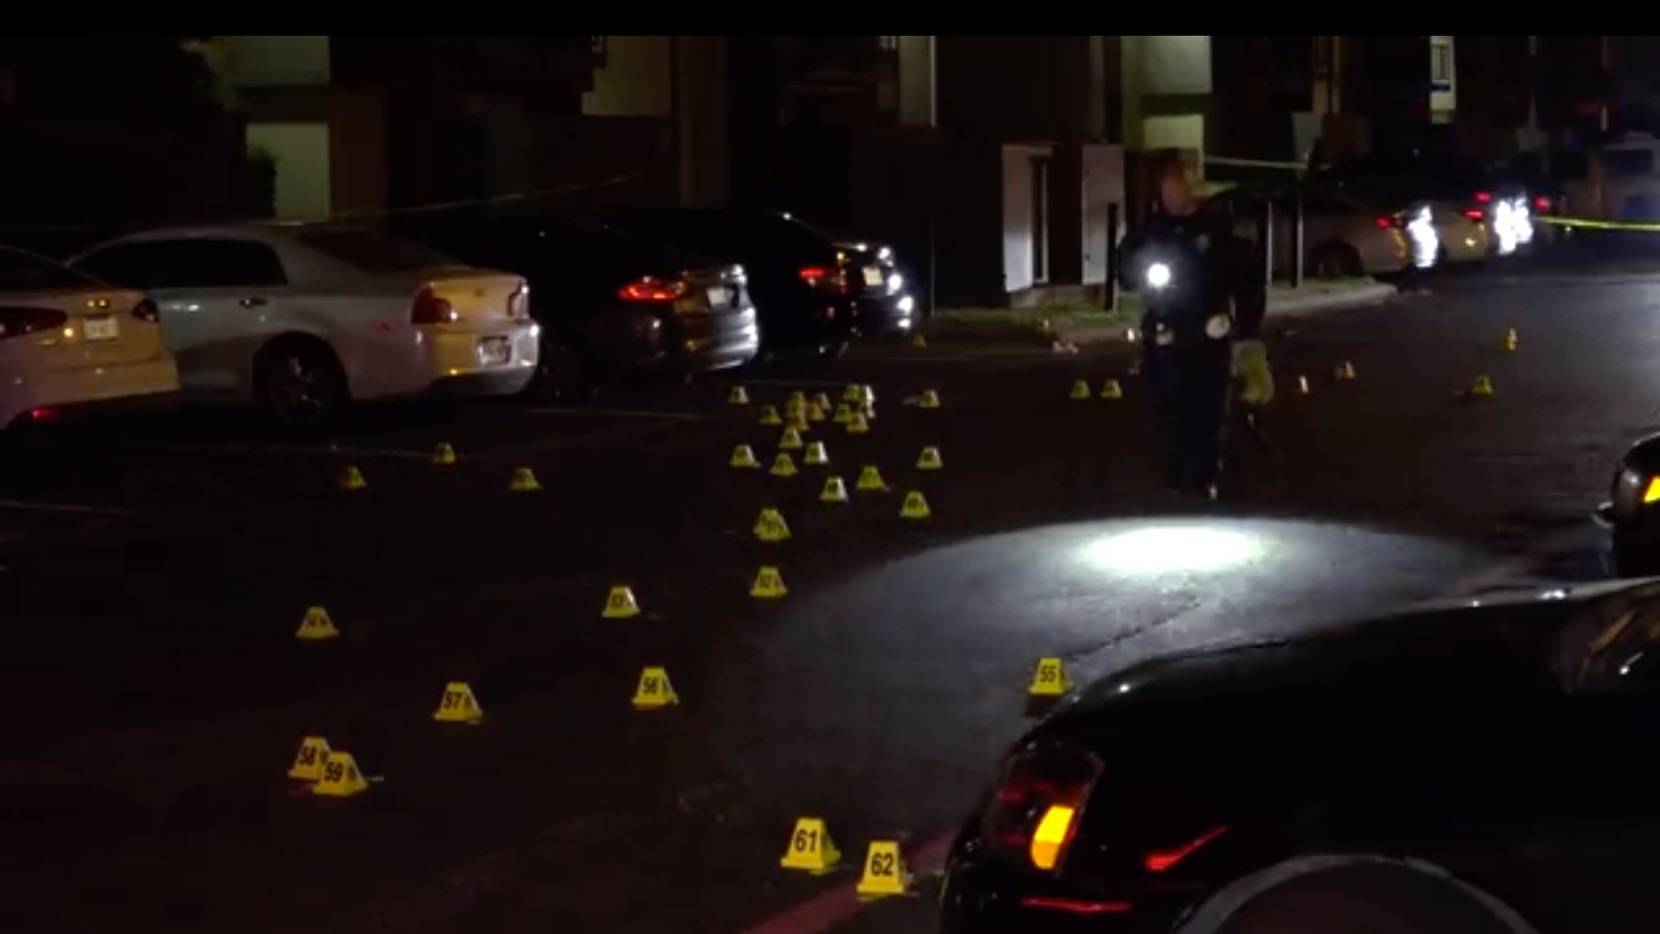 Dallas police were called early Friday to a shooting in the 1400 block of West Wheatland Road.